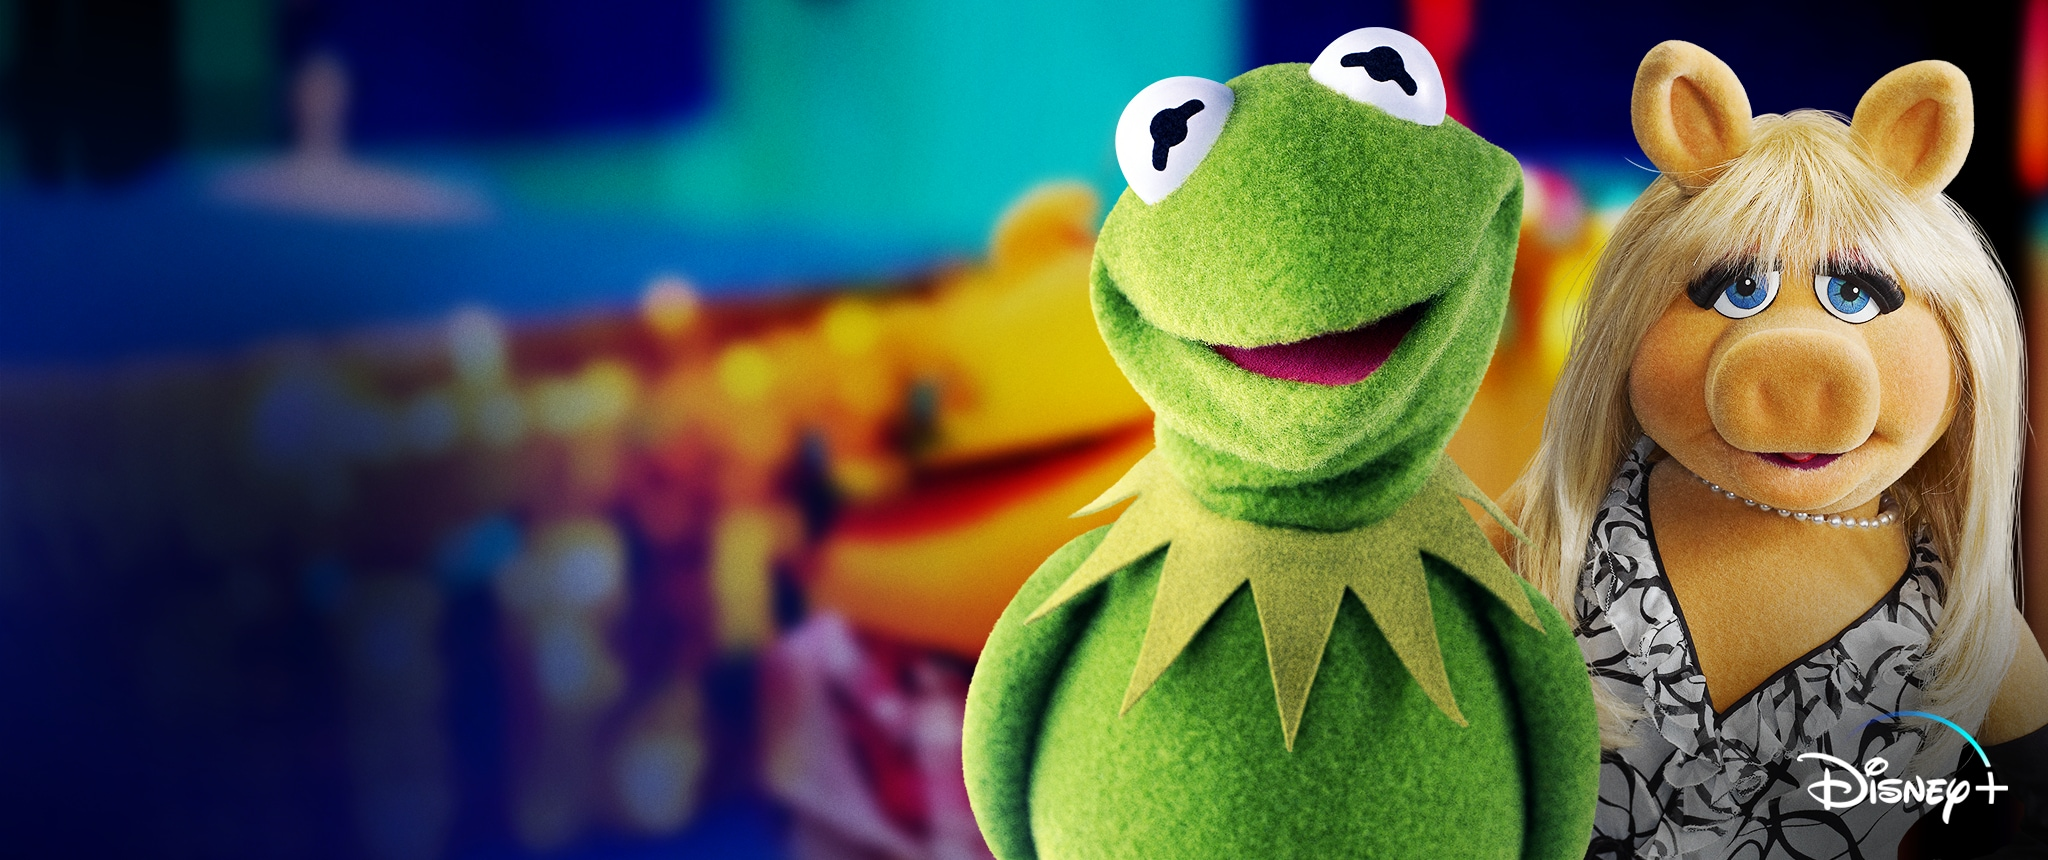 Hero - Disney+ - Muppets Now